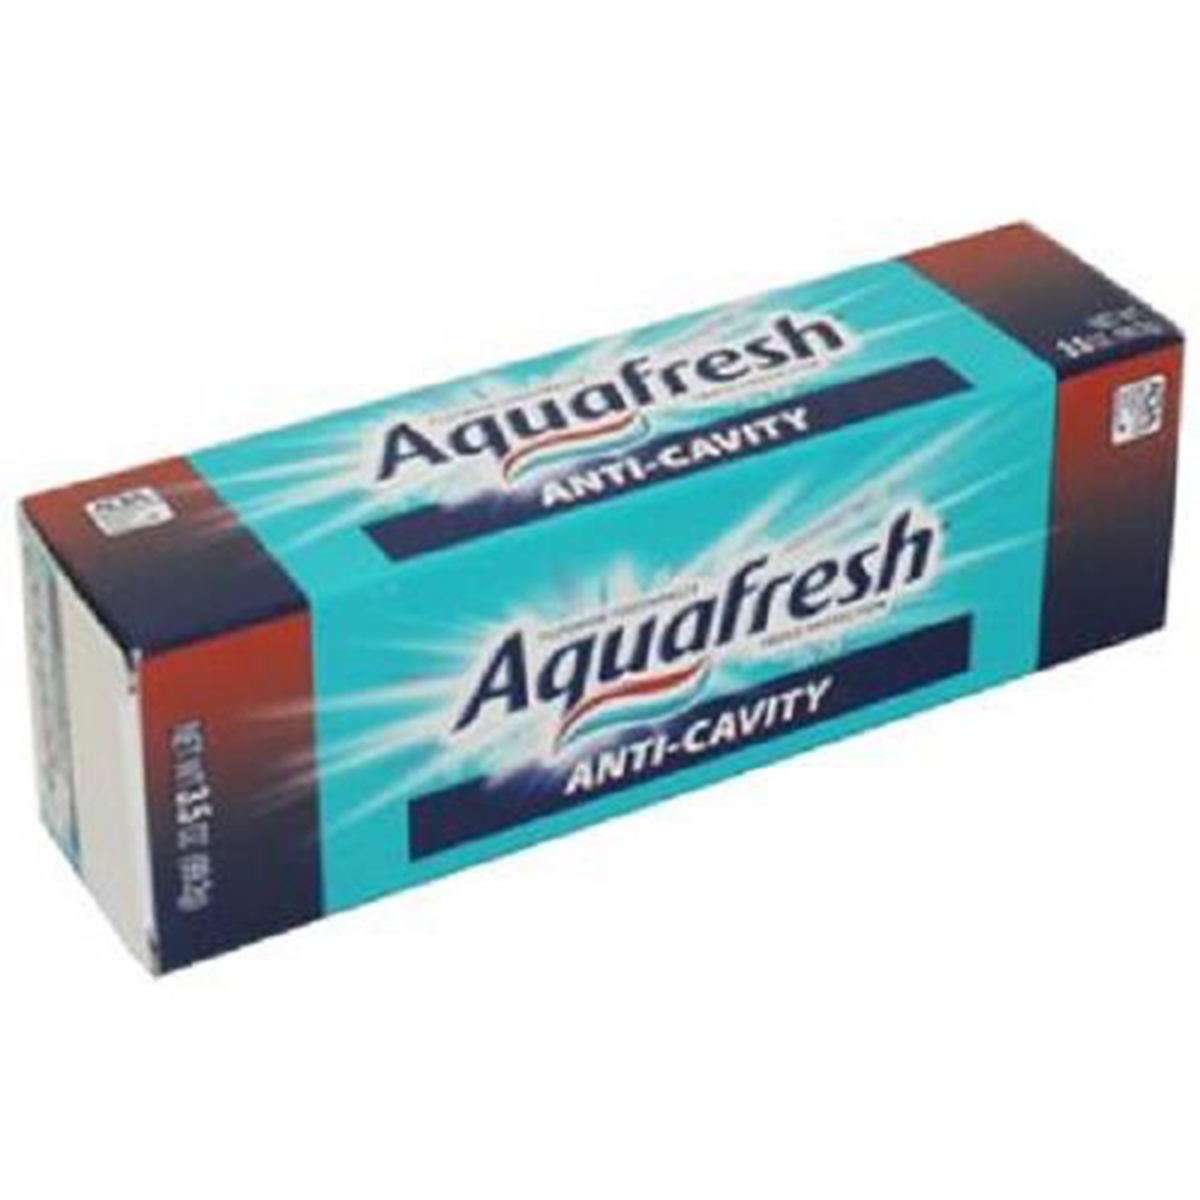 Product Of Aquafresh, Fluoride Tooth Paste, Count 1 - Tooth Paste / Grab Varieties & Flavors